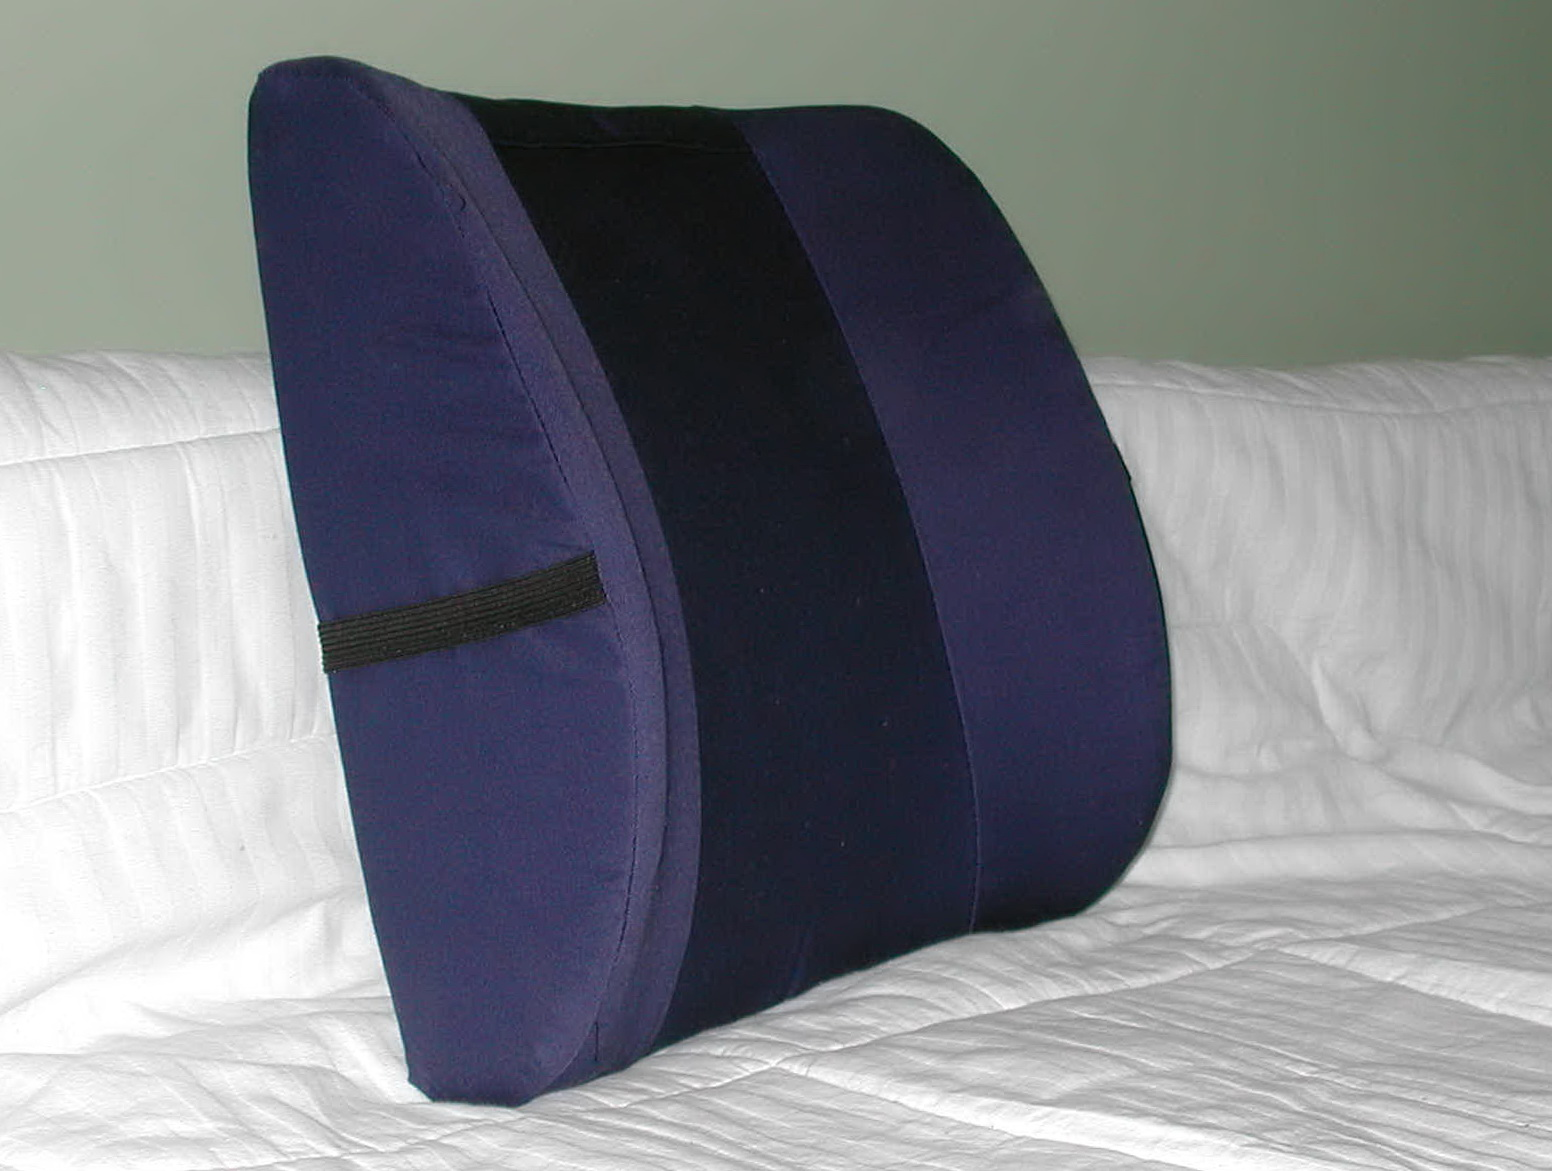 cushion for car seat for back pain